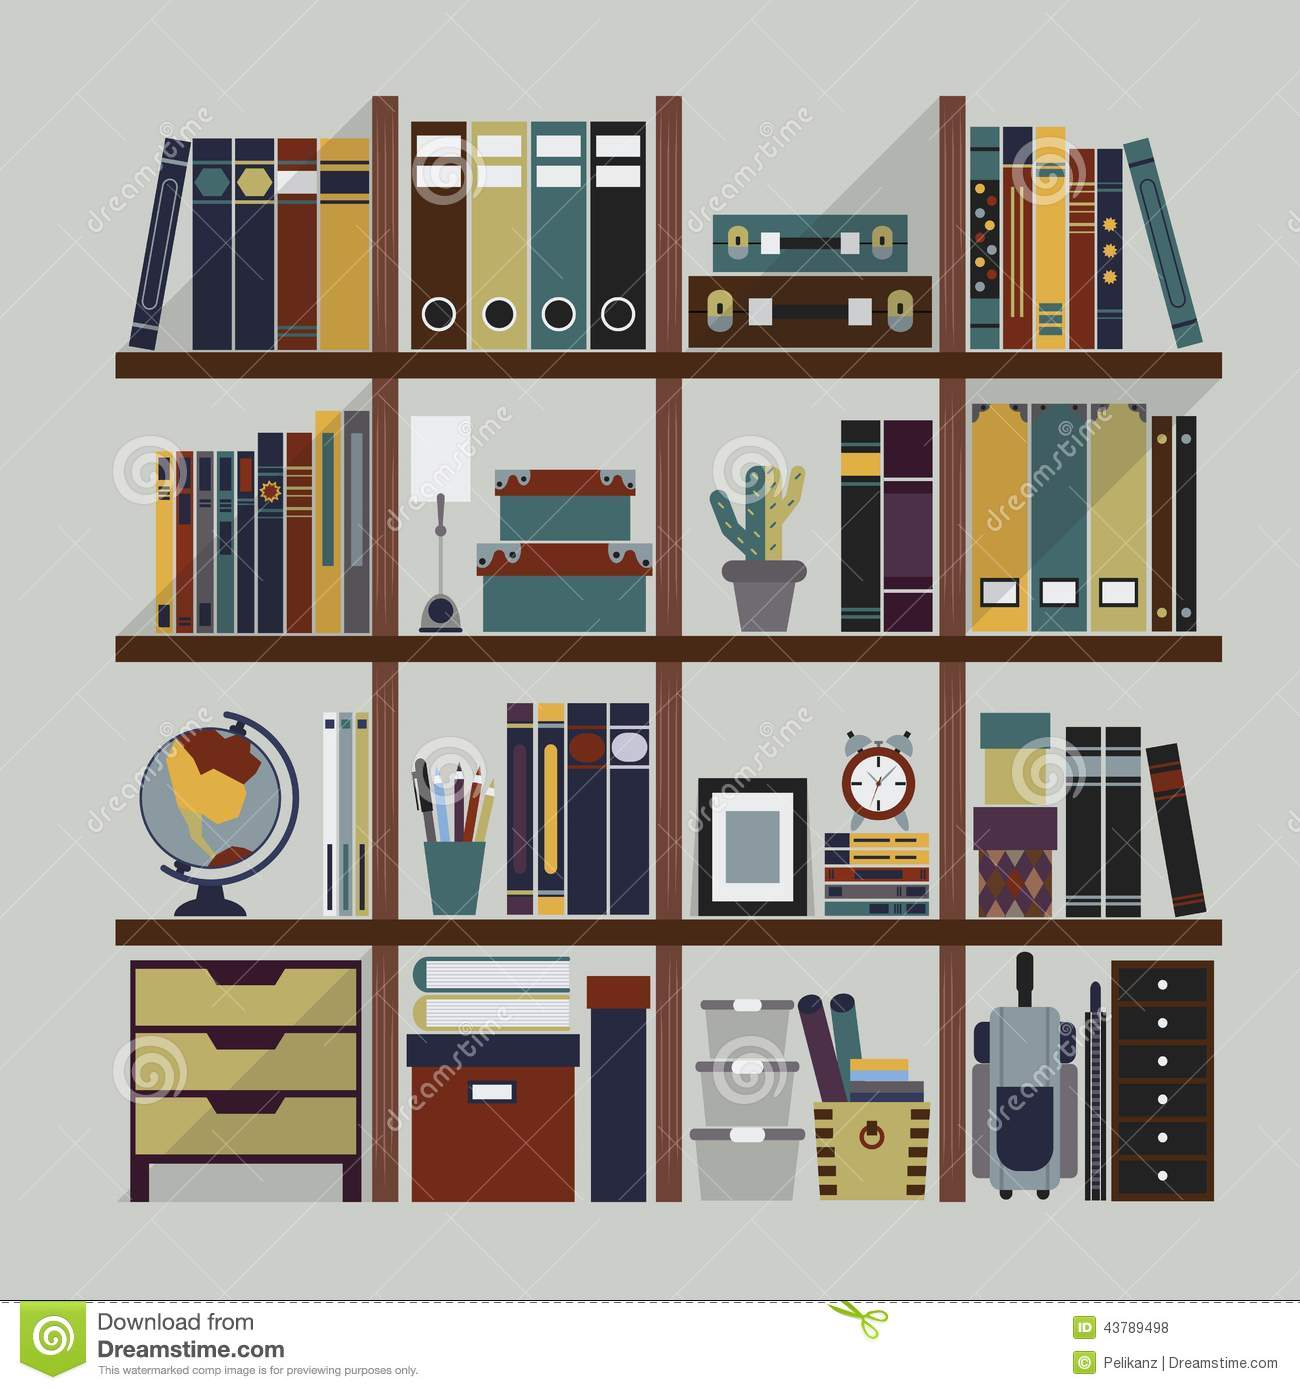 Stock Illustration Wooden Bookshelf Different Objects Including Books Folders Organizers Boxes Suitcases Frame Alarm Clock Pencil Case Image43789498 on alarm clock wallpaper